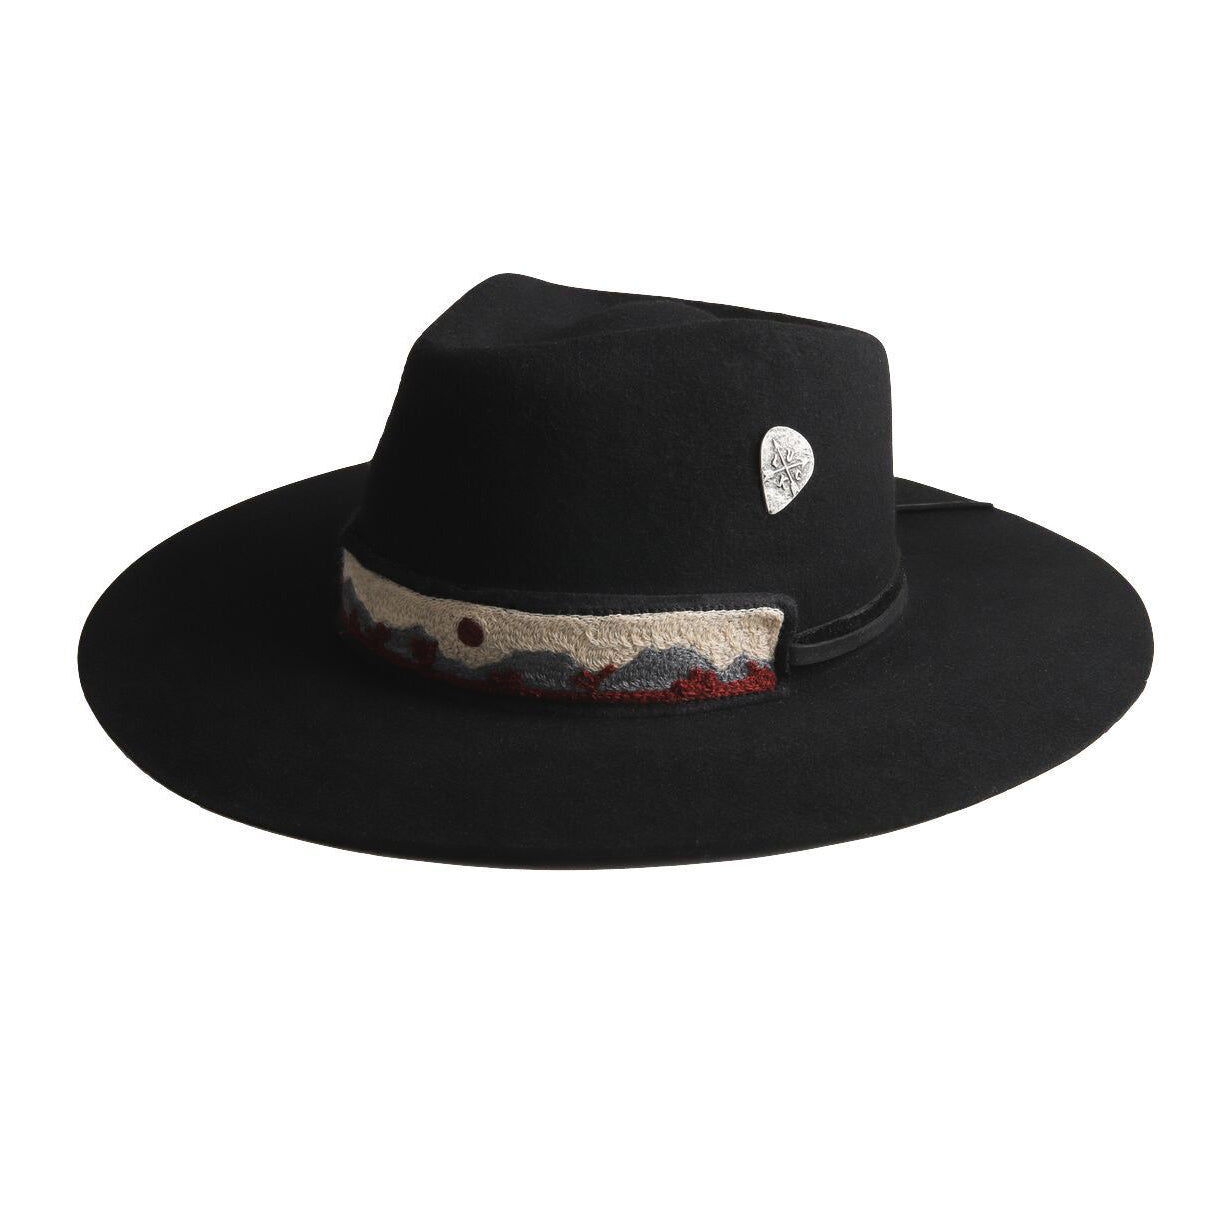 black cowboy hat with cross stitched hat band